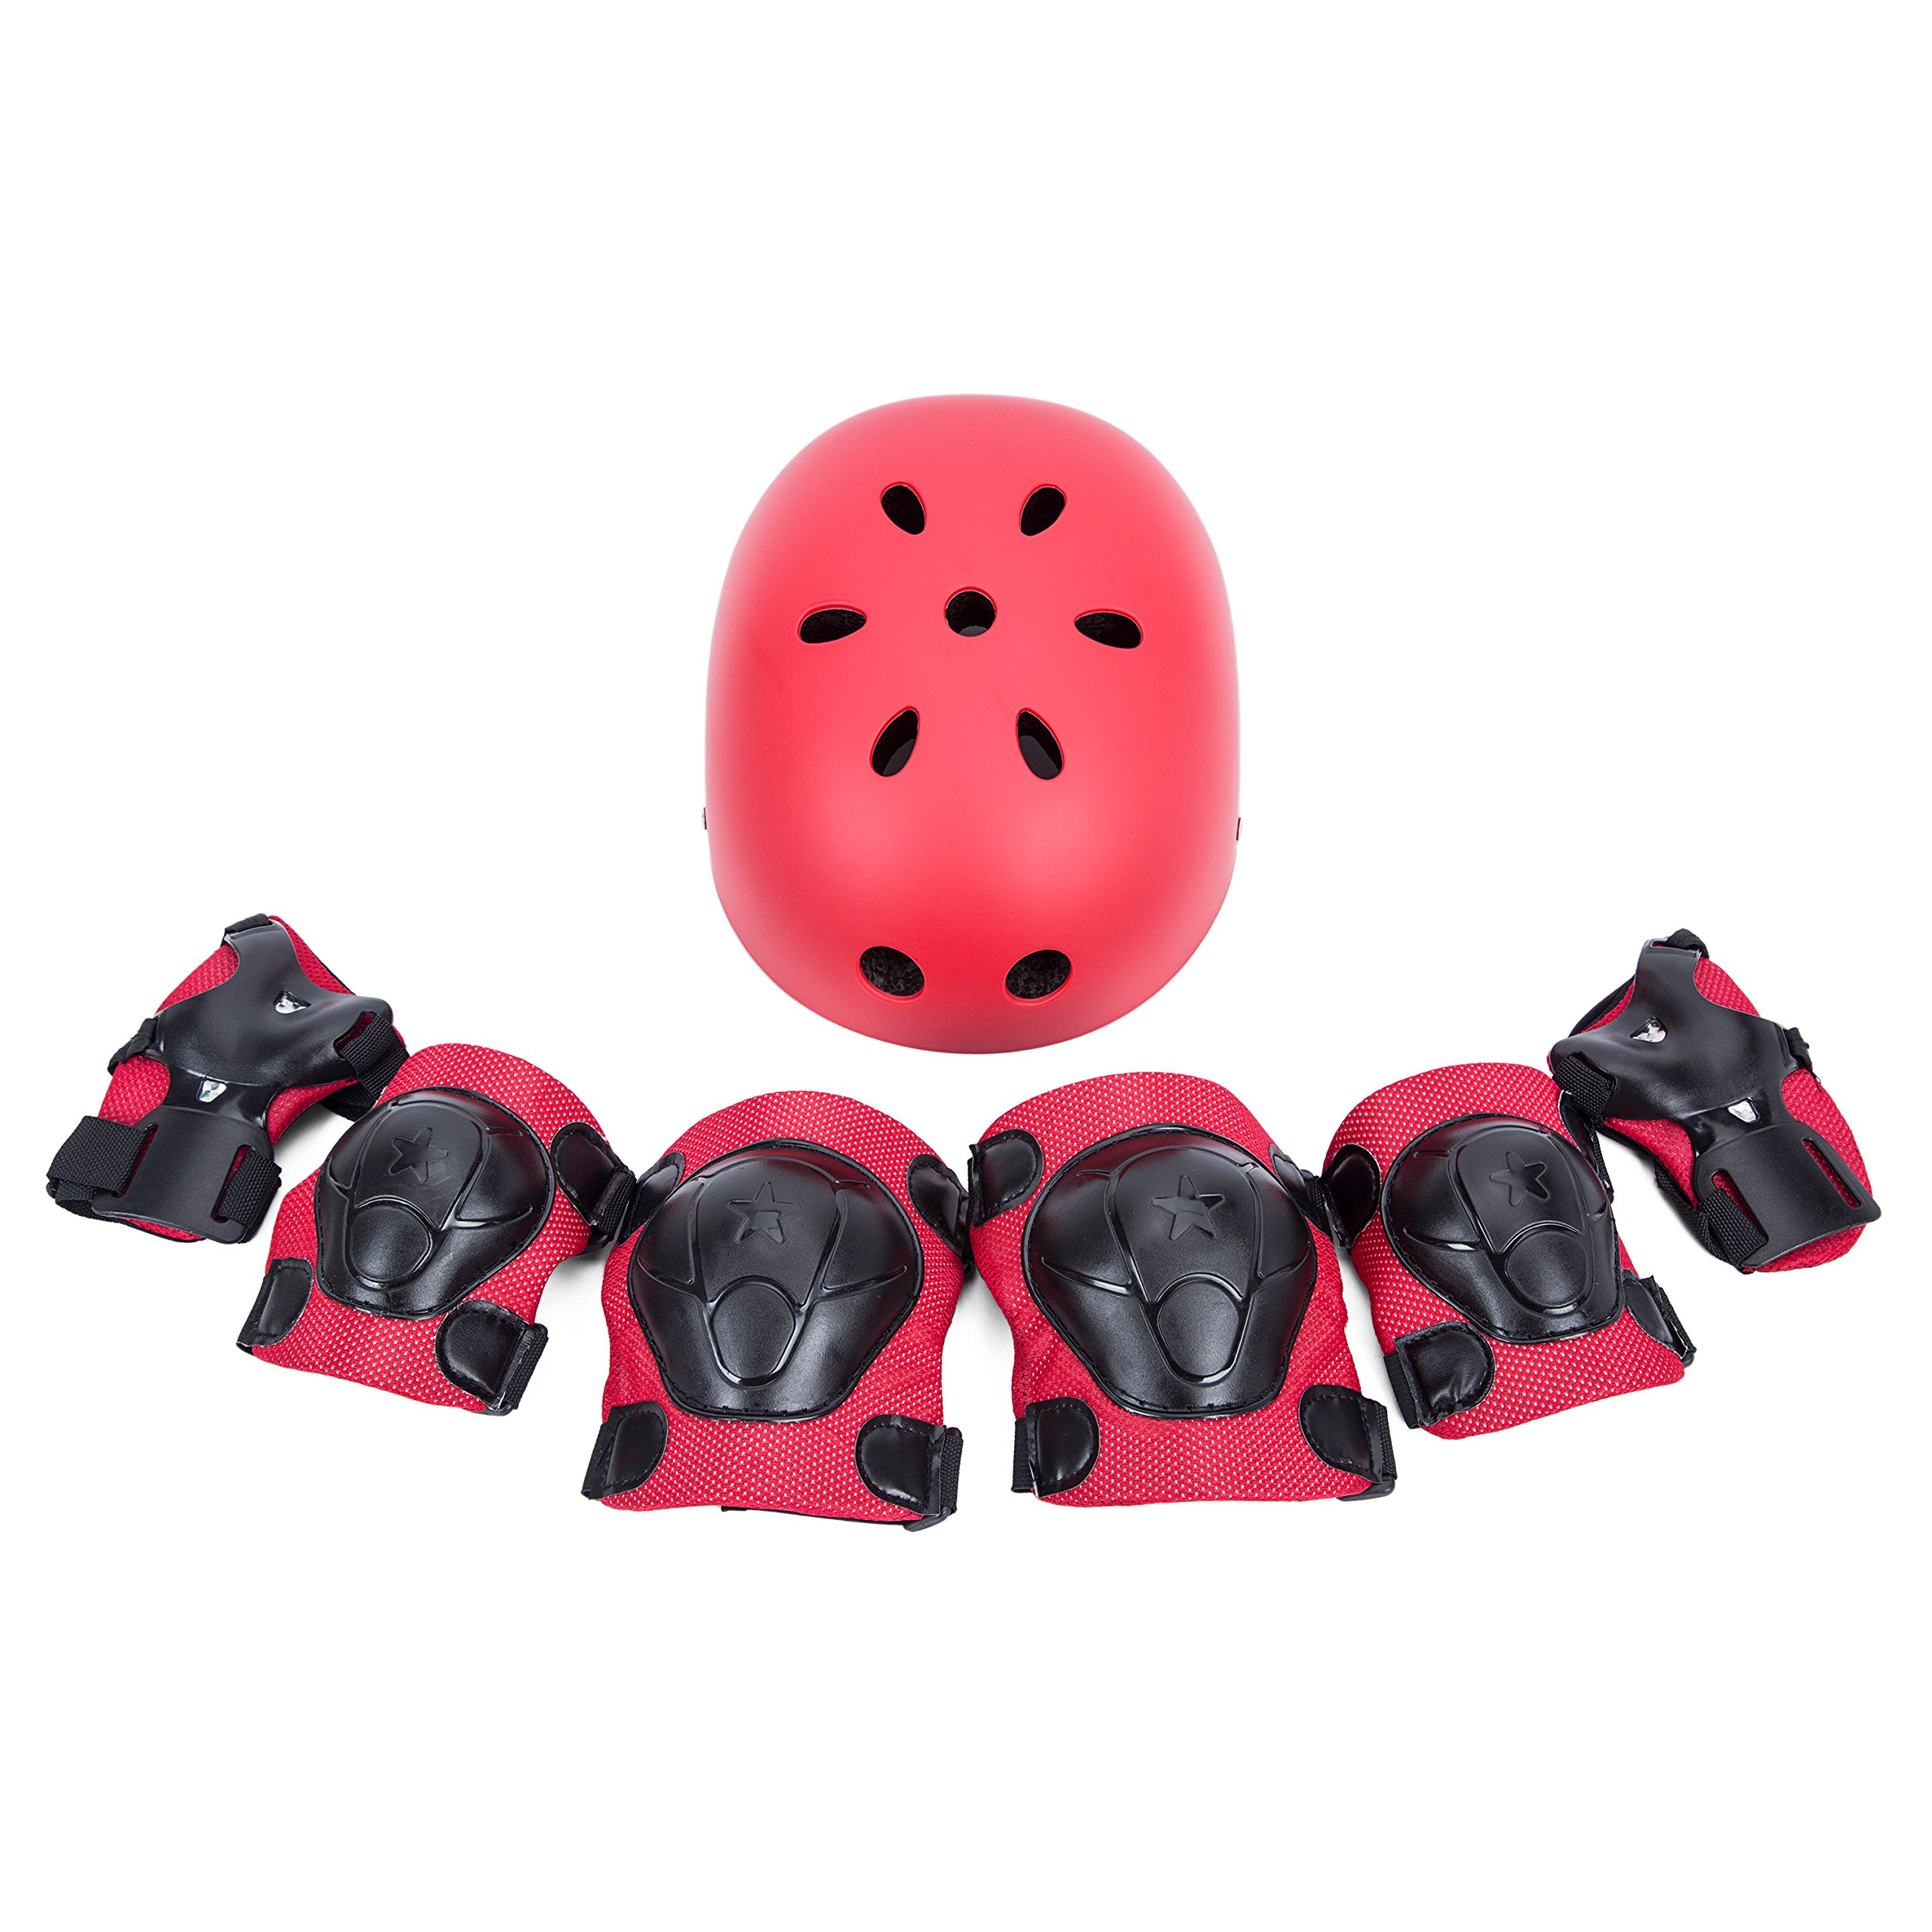 SUNVP Kid's Bike Helmet with 7 Pieces Protect Gear Sets Knee/Elbow/Wrist Pads Toddler Adjustable Bicycle Cycle Helmet for Road Mountain Skateboard Scooter(Red)